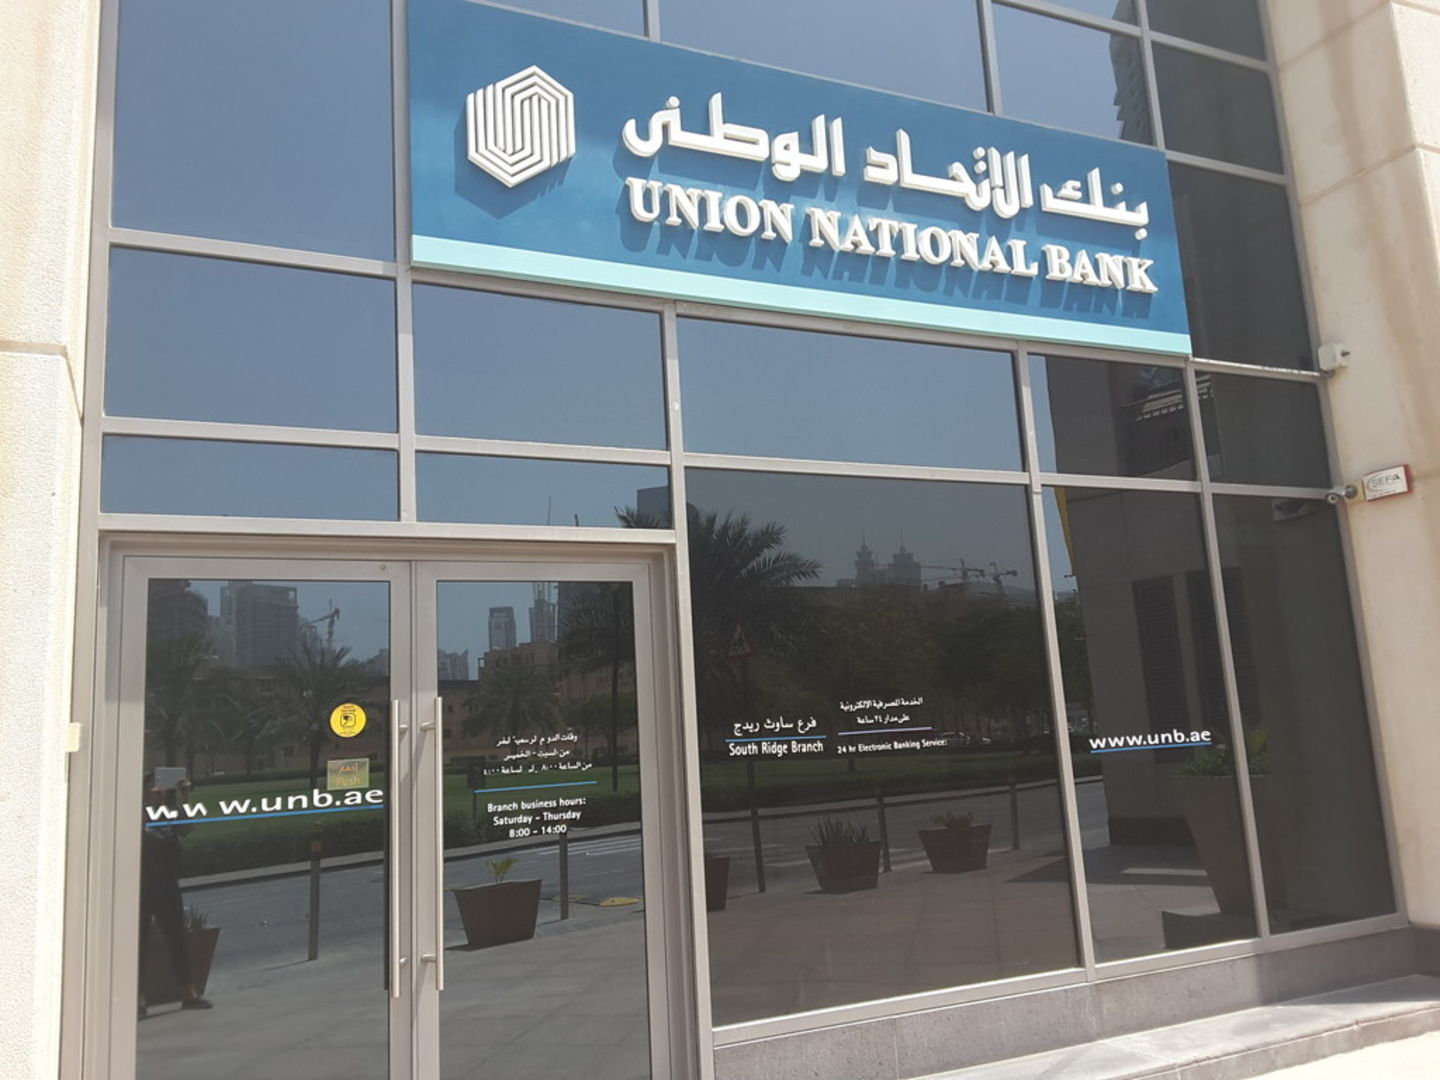 HiDubai-business-union-national-bank-finance-legal-financial-services-downtown-dubai-dubai-2